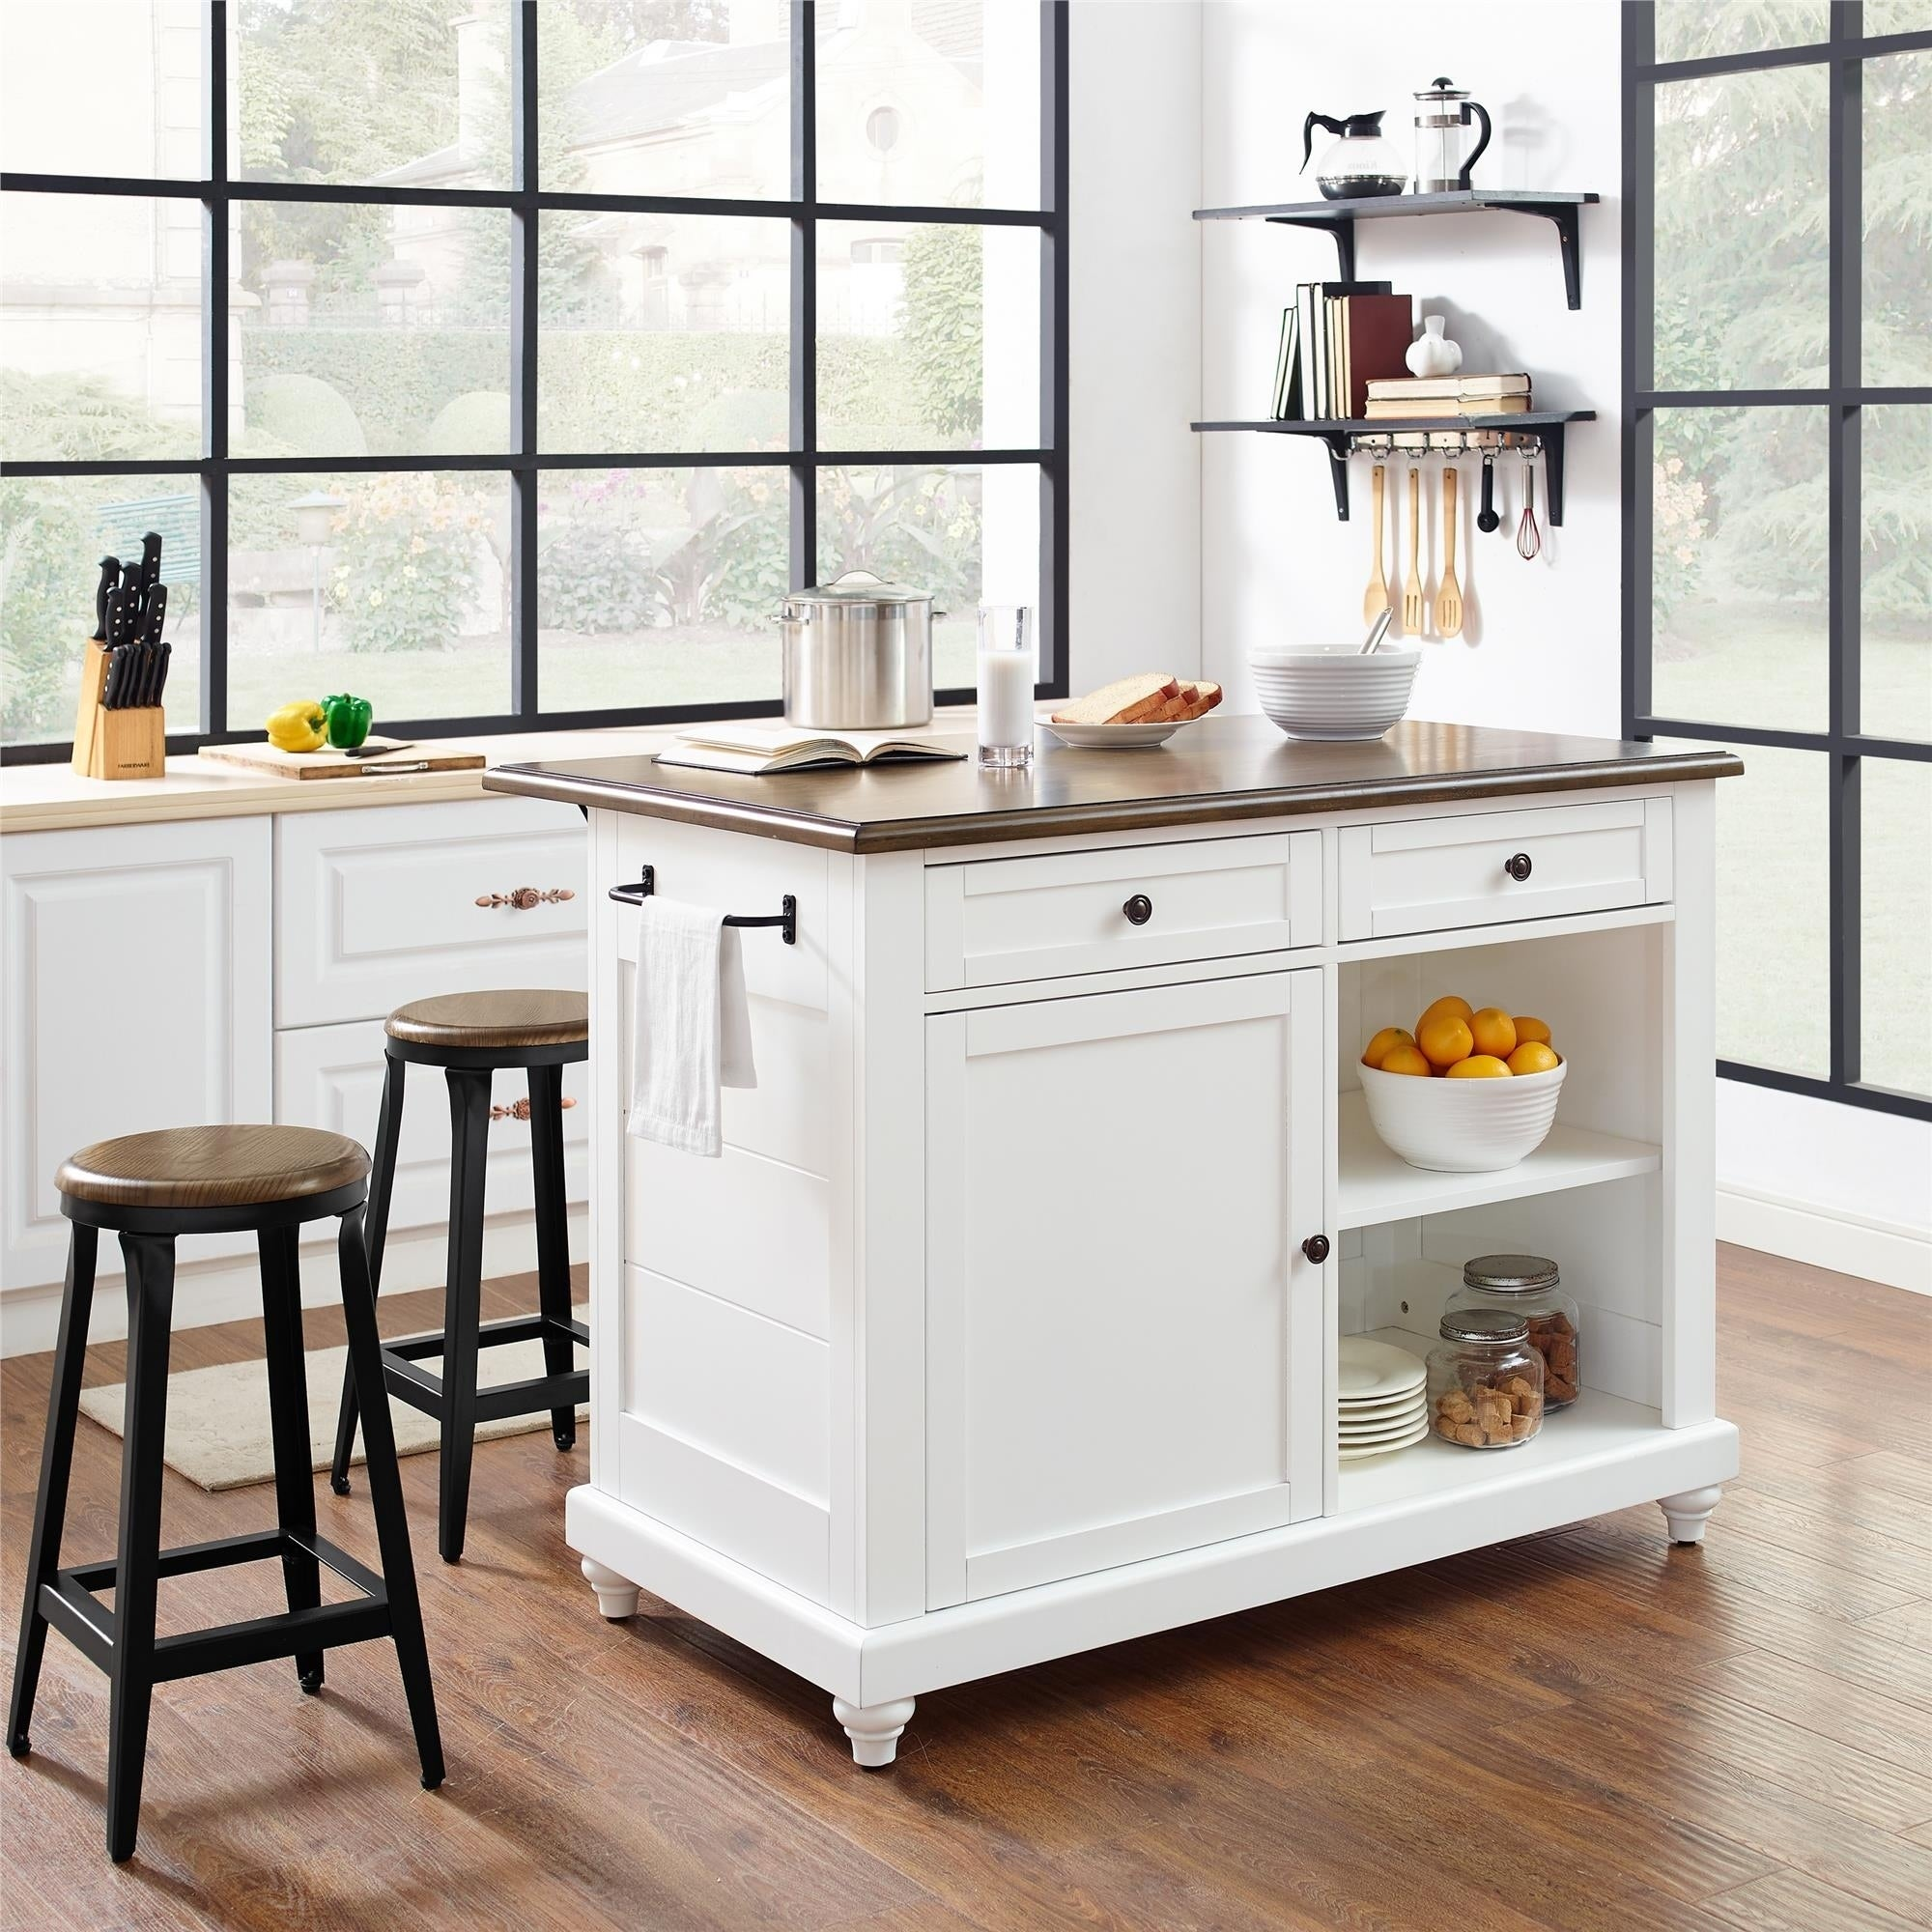 Avenue Greene Betty White Kitchen Island with 2 Stools